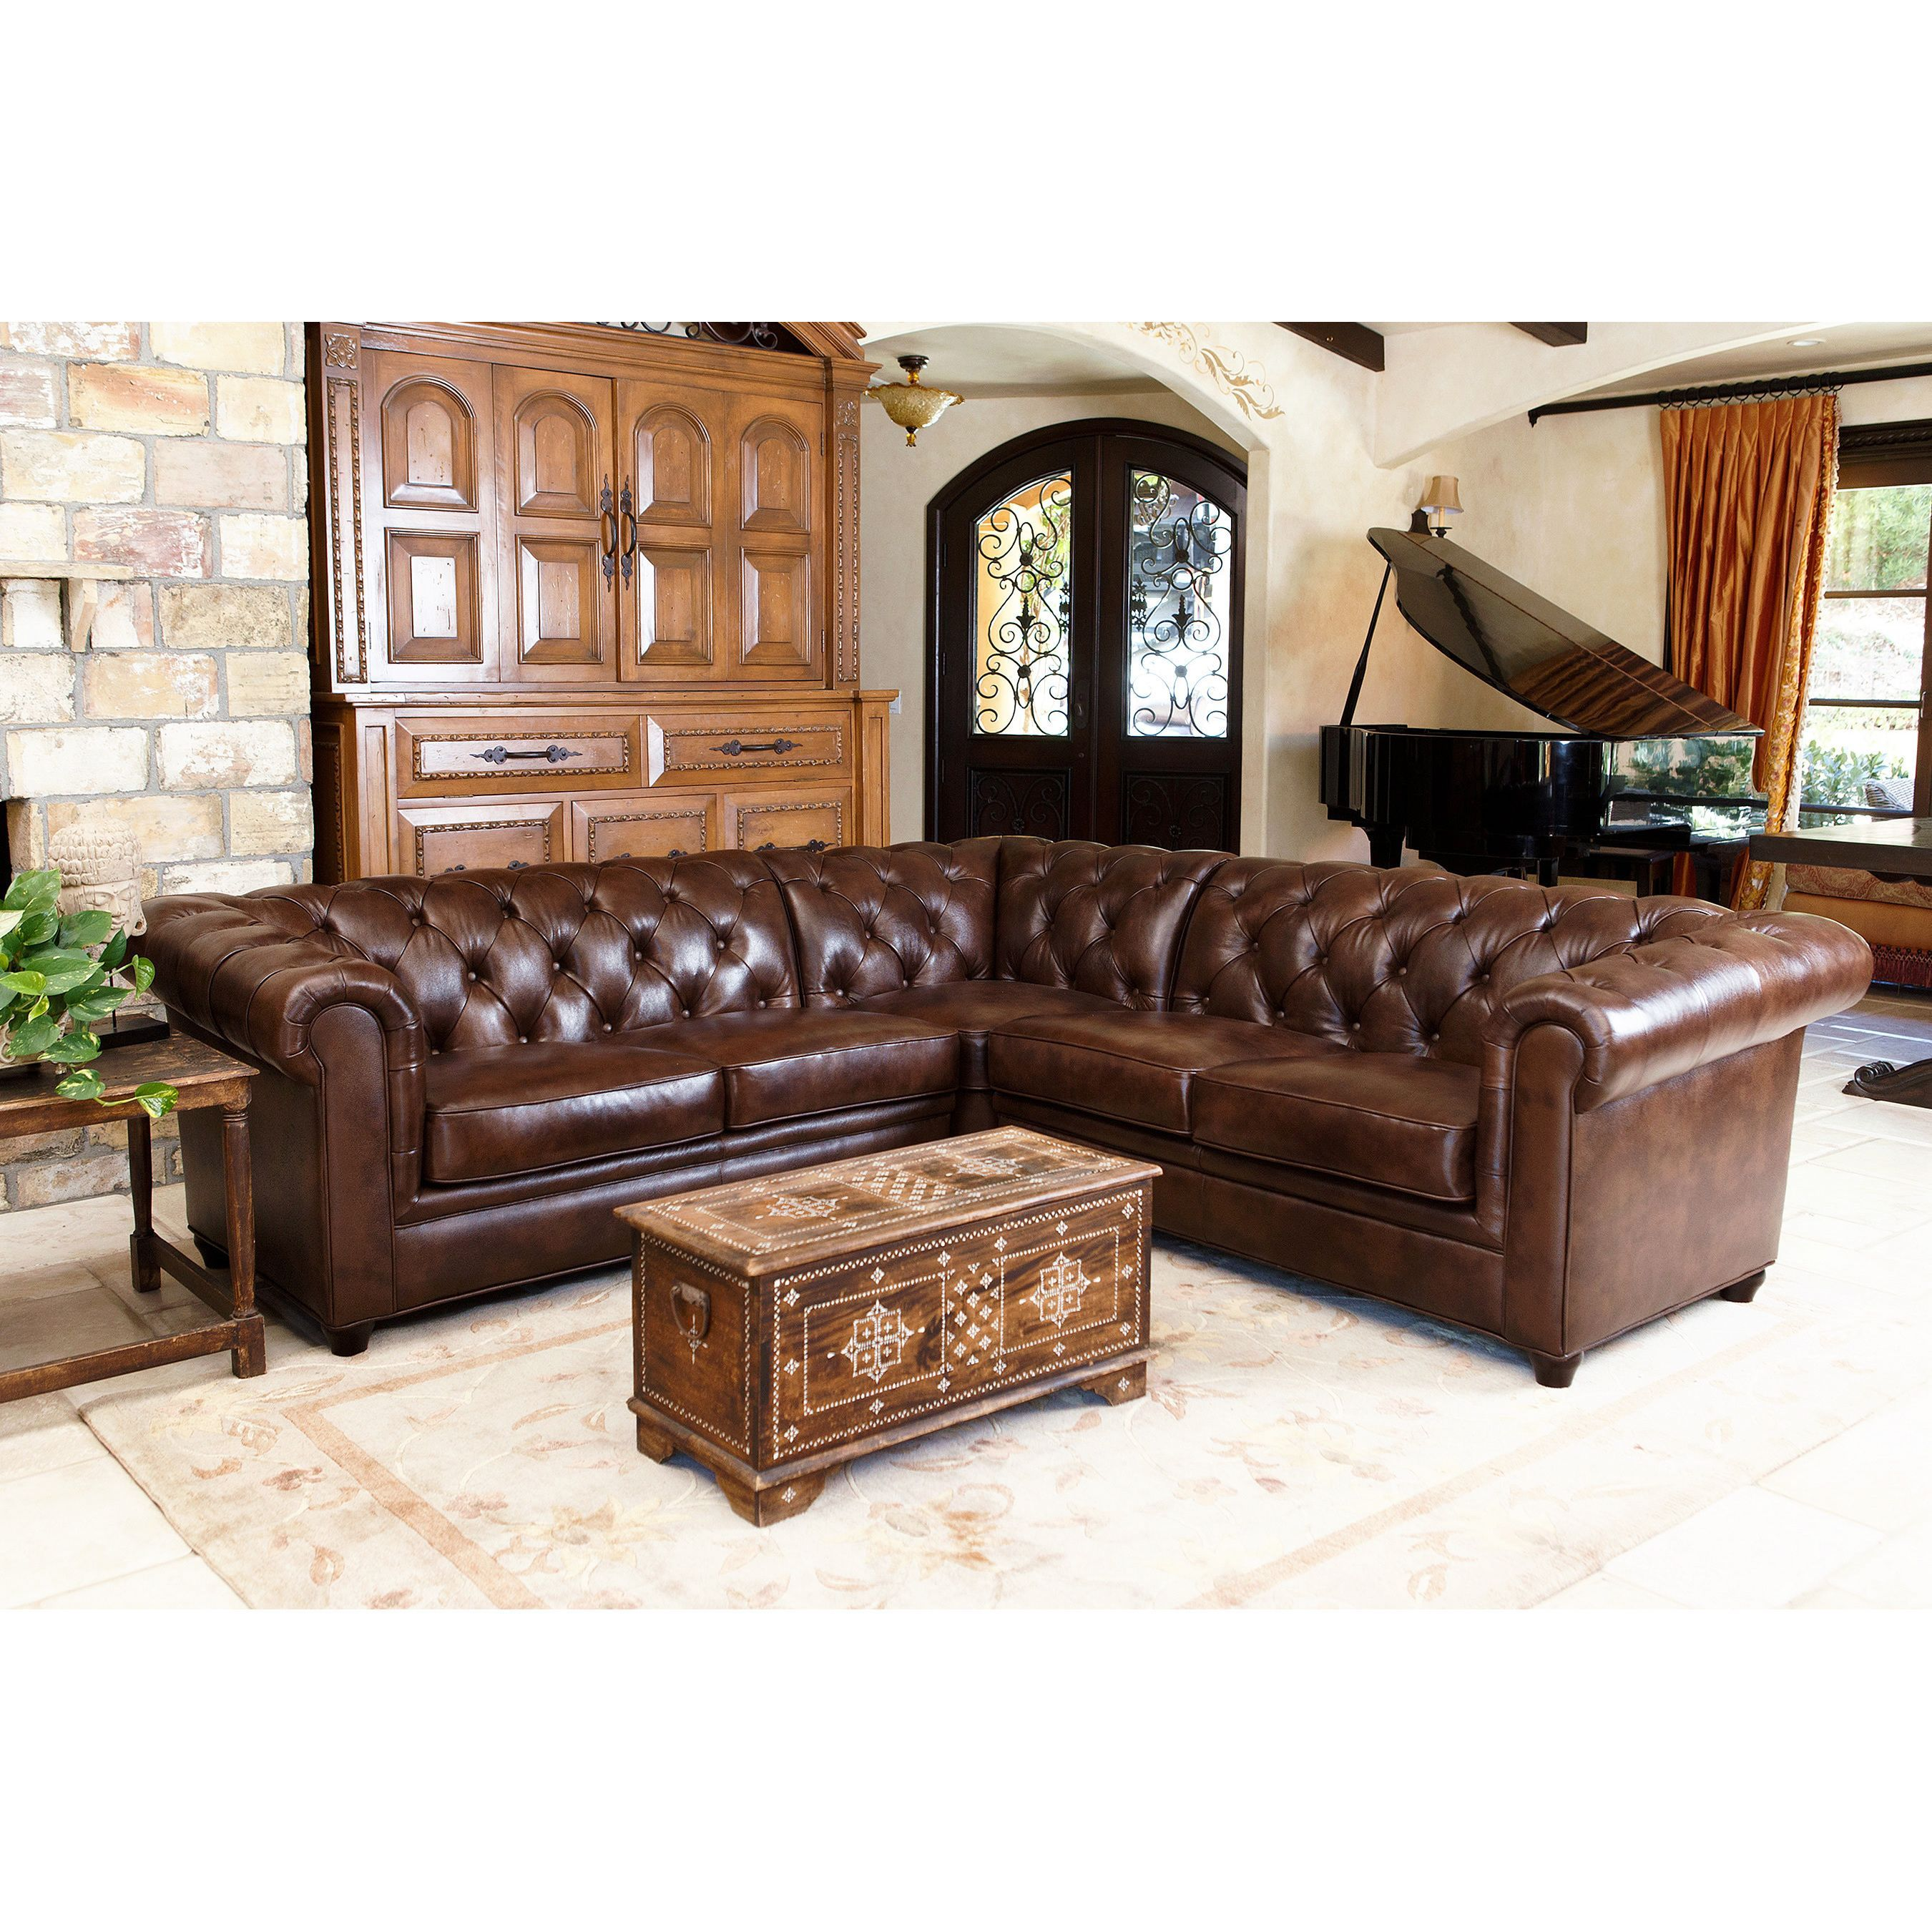 2 piece brown leather sofa small sofas for sale the tuscan tufted three sectional is upholstered in